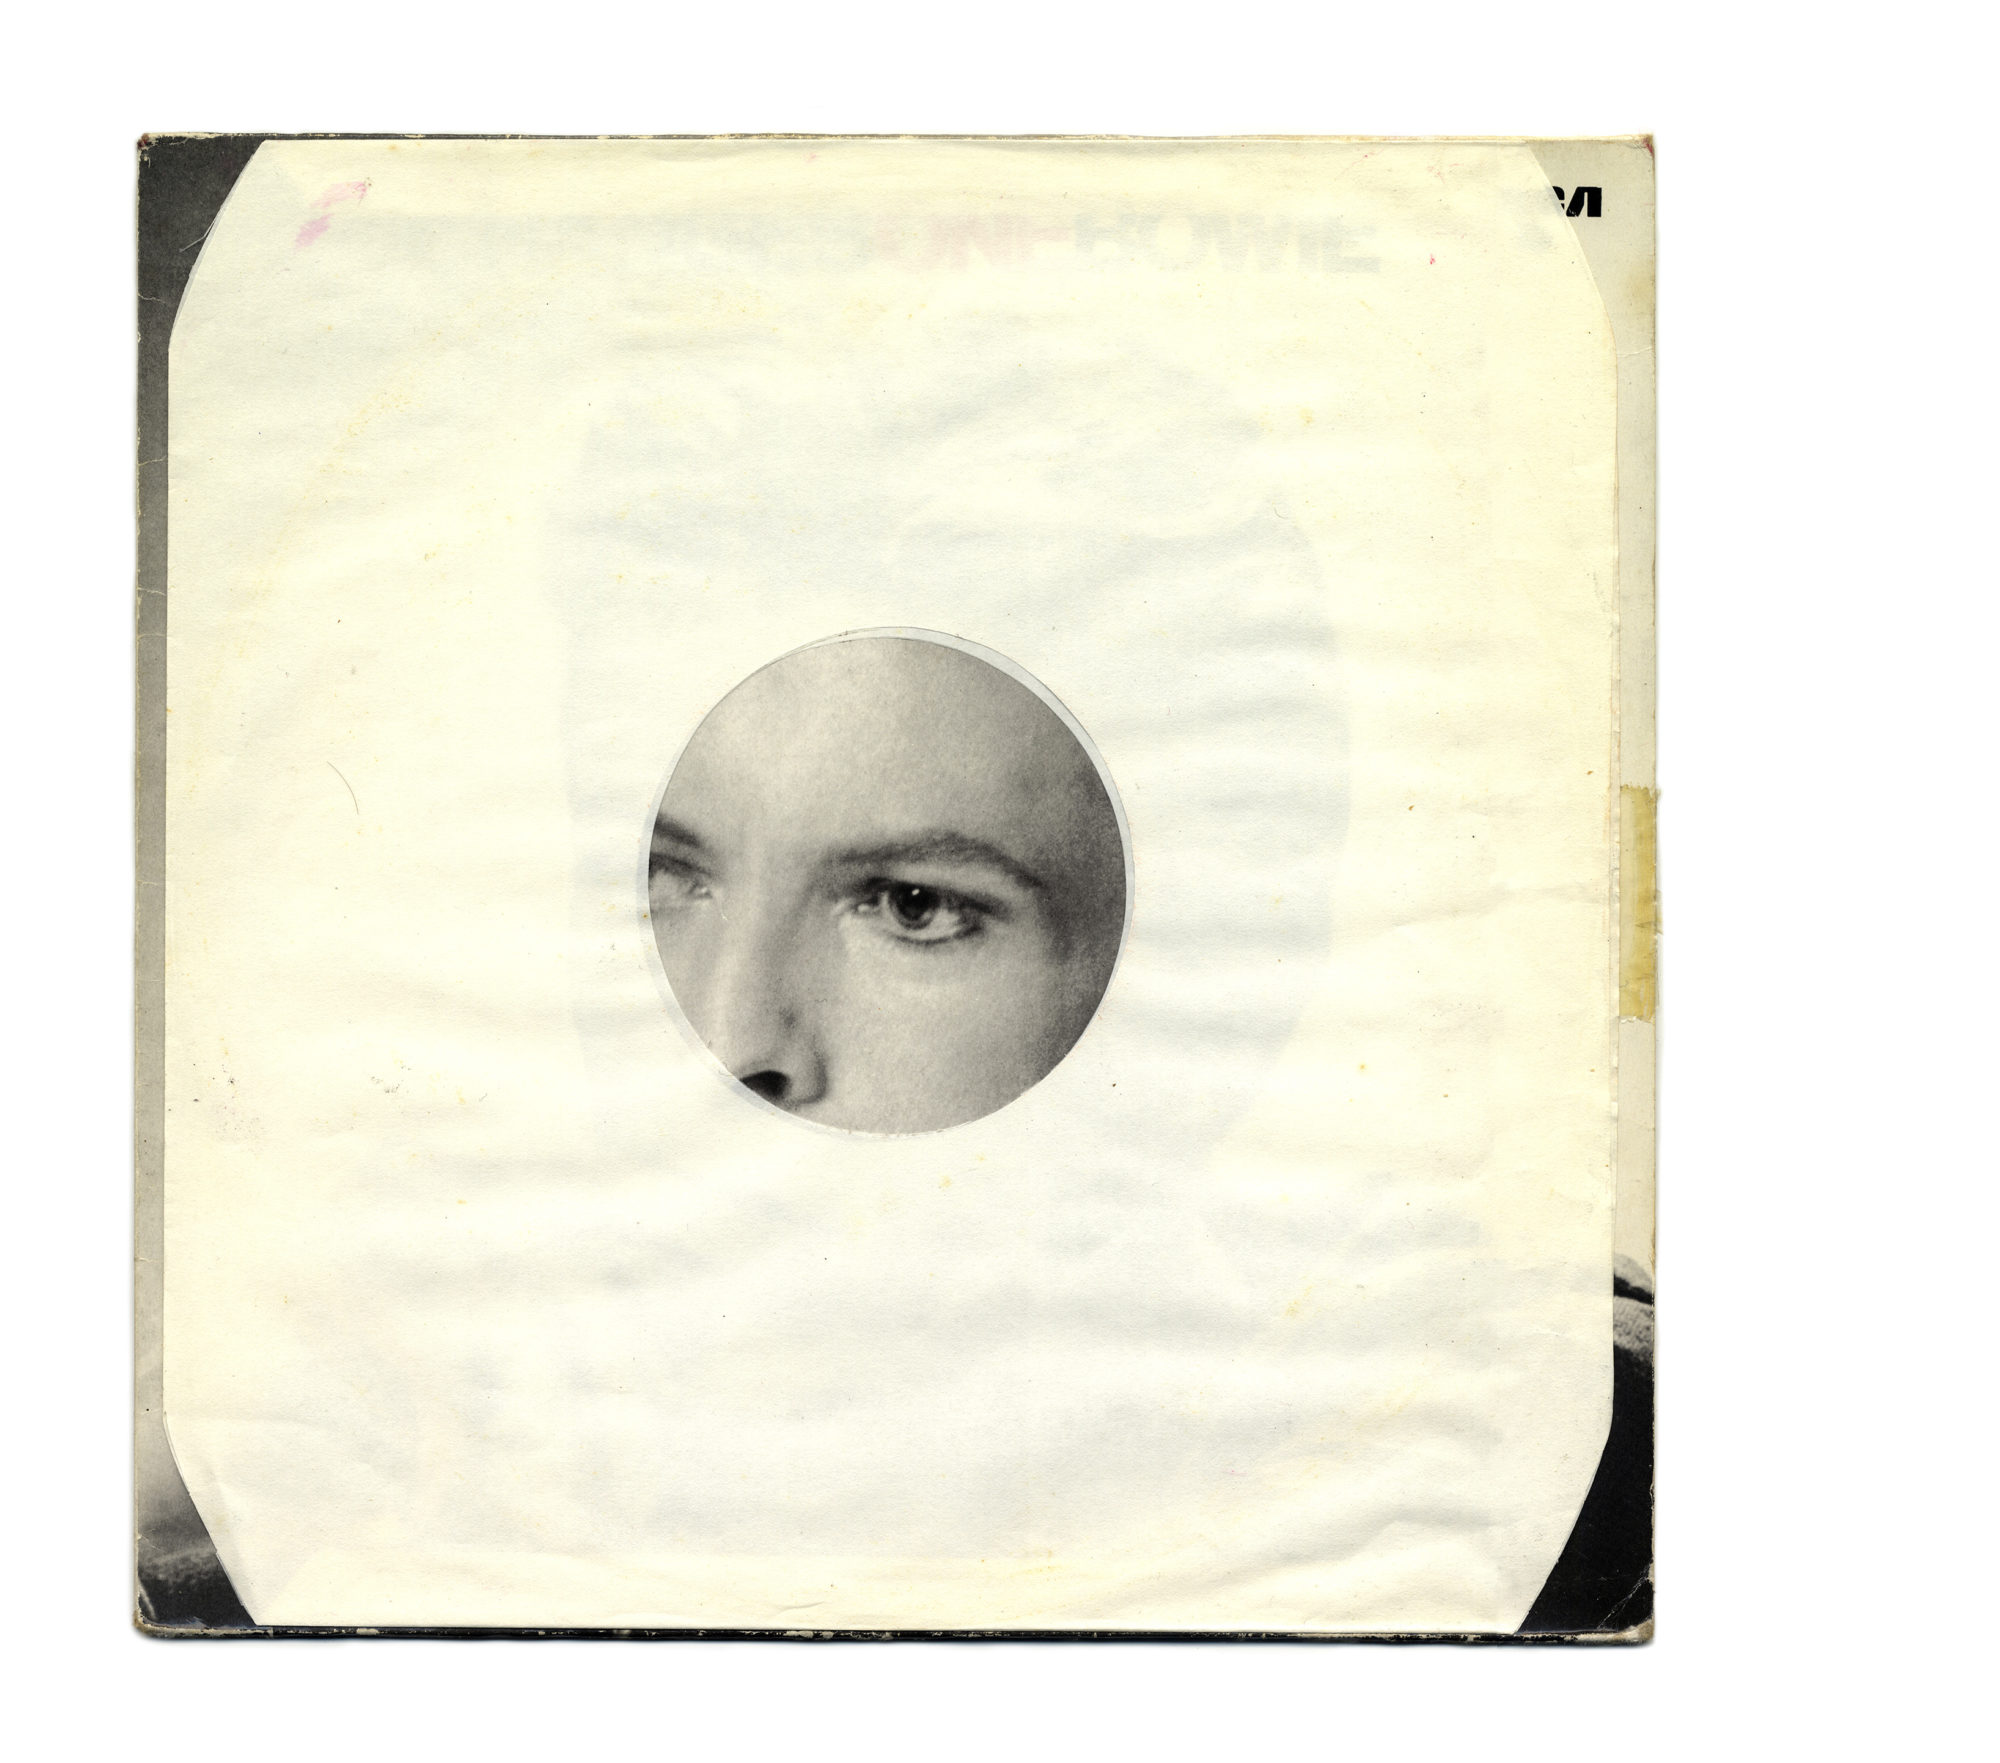 Franks David Bowie Record Cover Sleeve lr